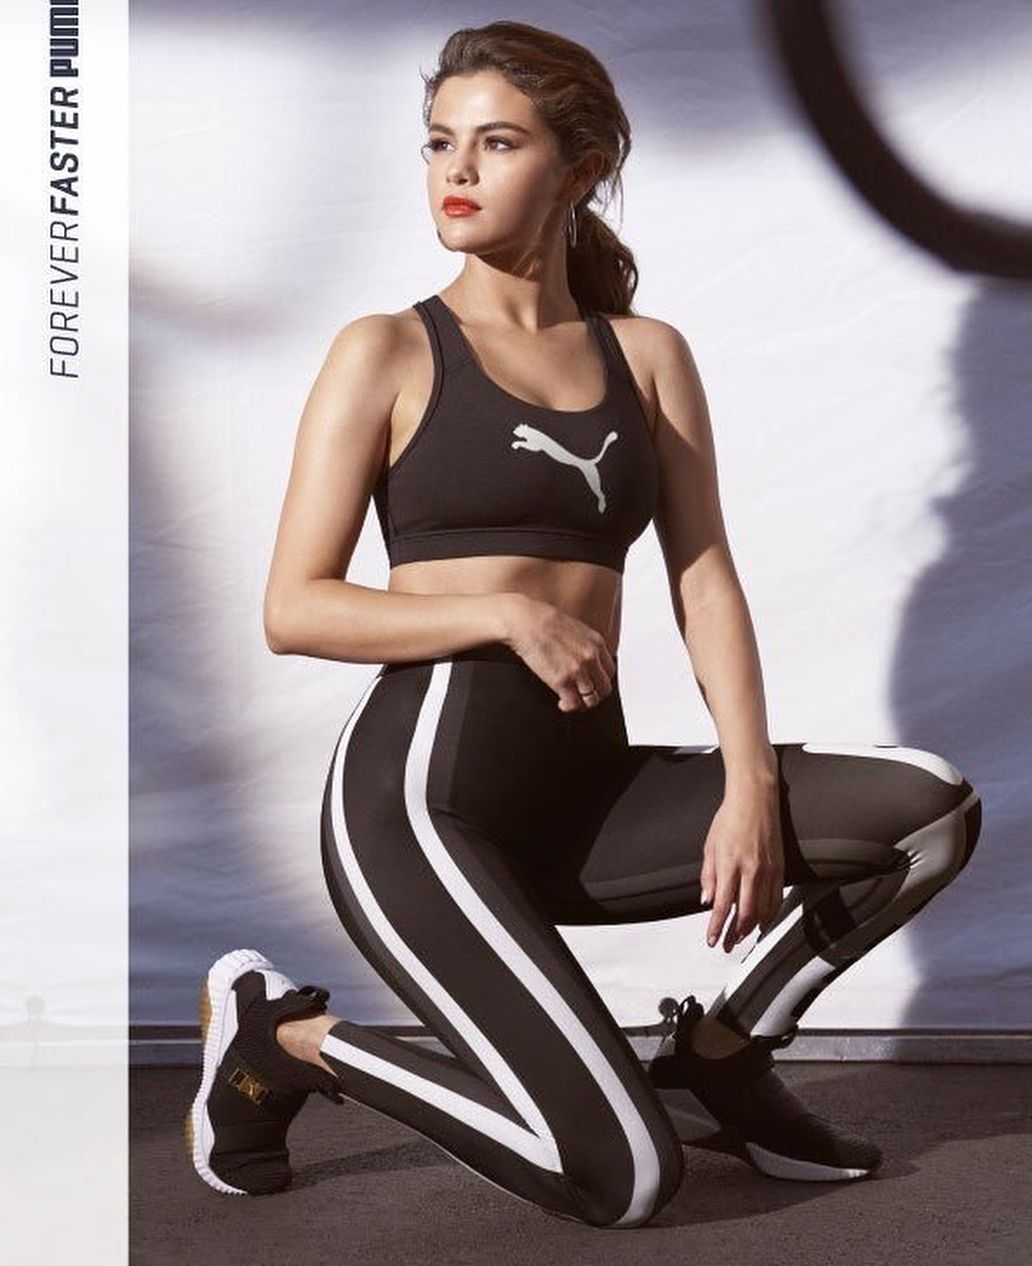 a38ca2346b5 Defy Mid worn by Selena Gomez will be coming out August 2nd.  Mia    SelenaGomez